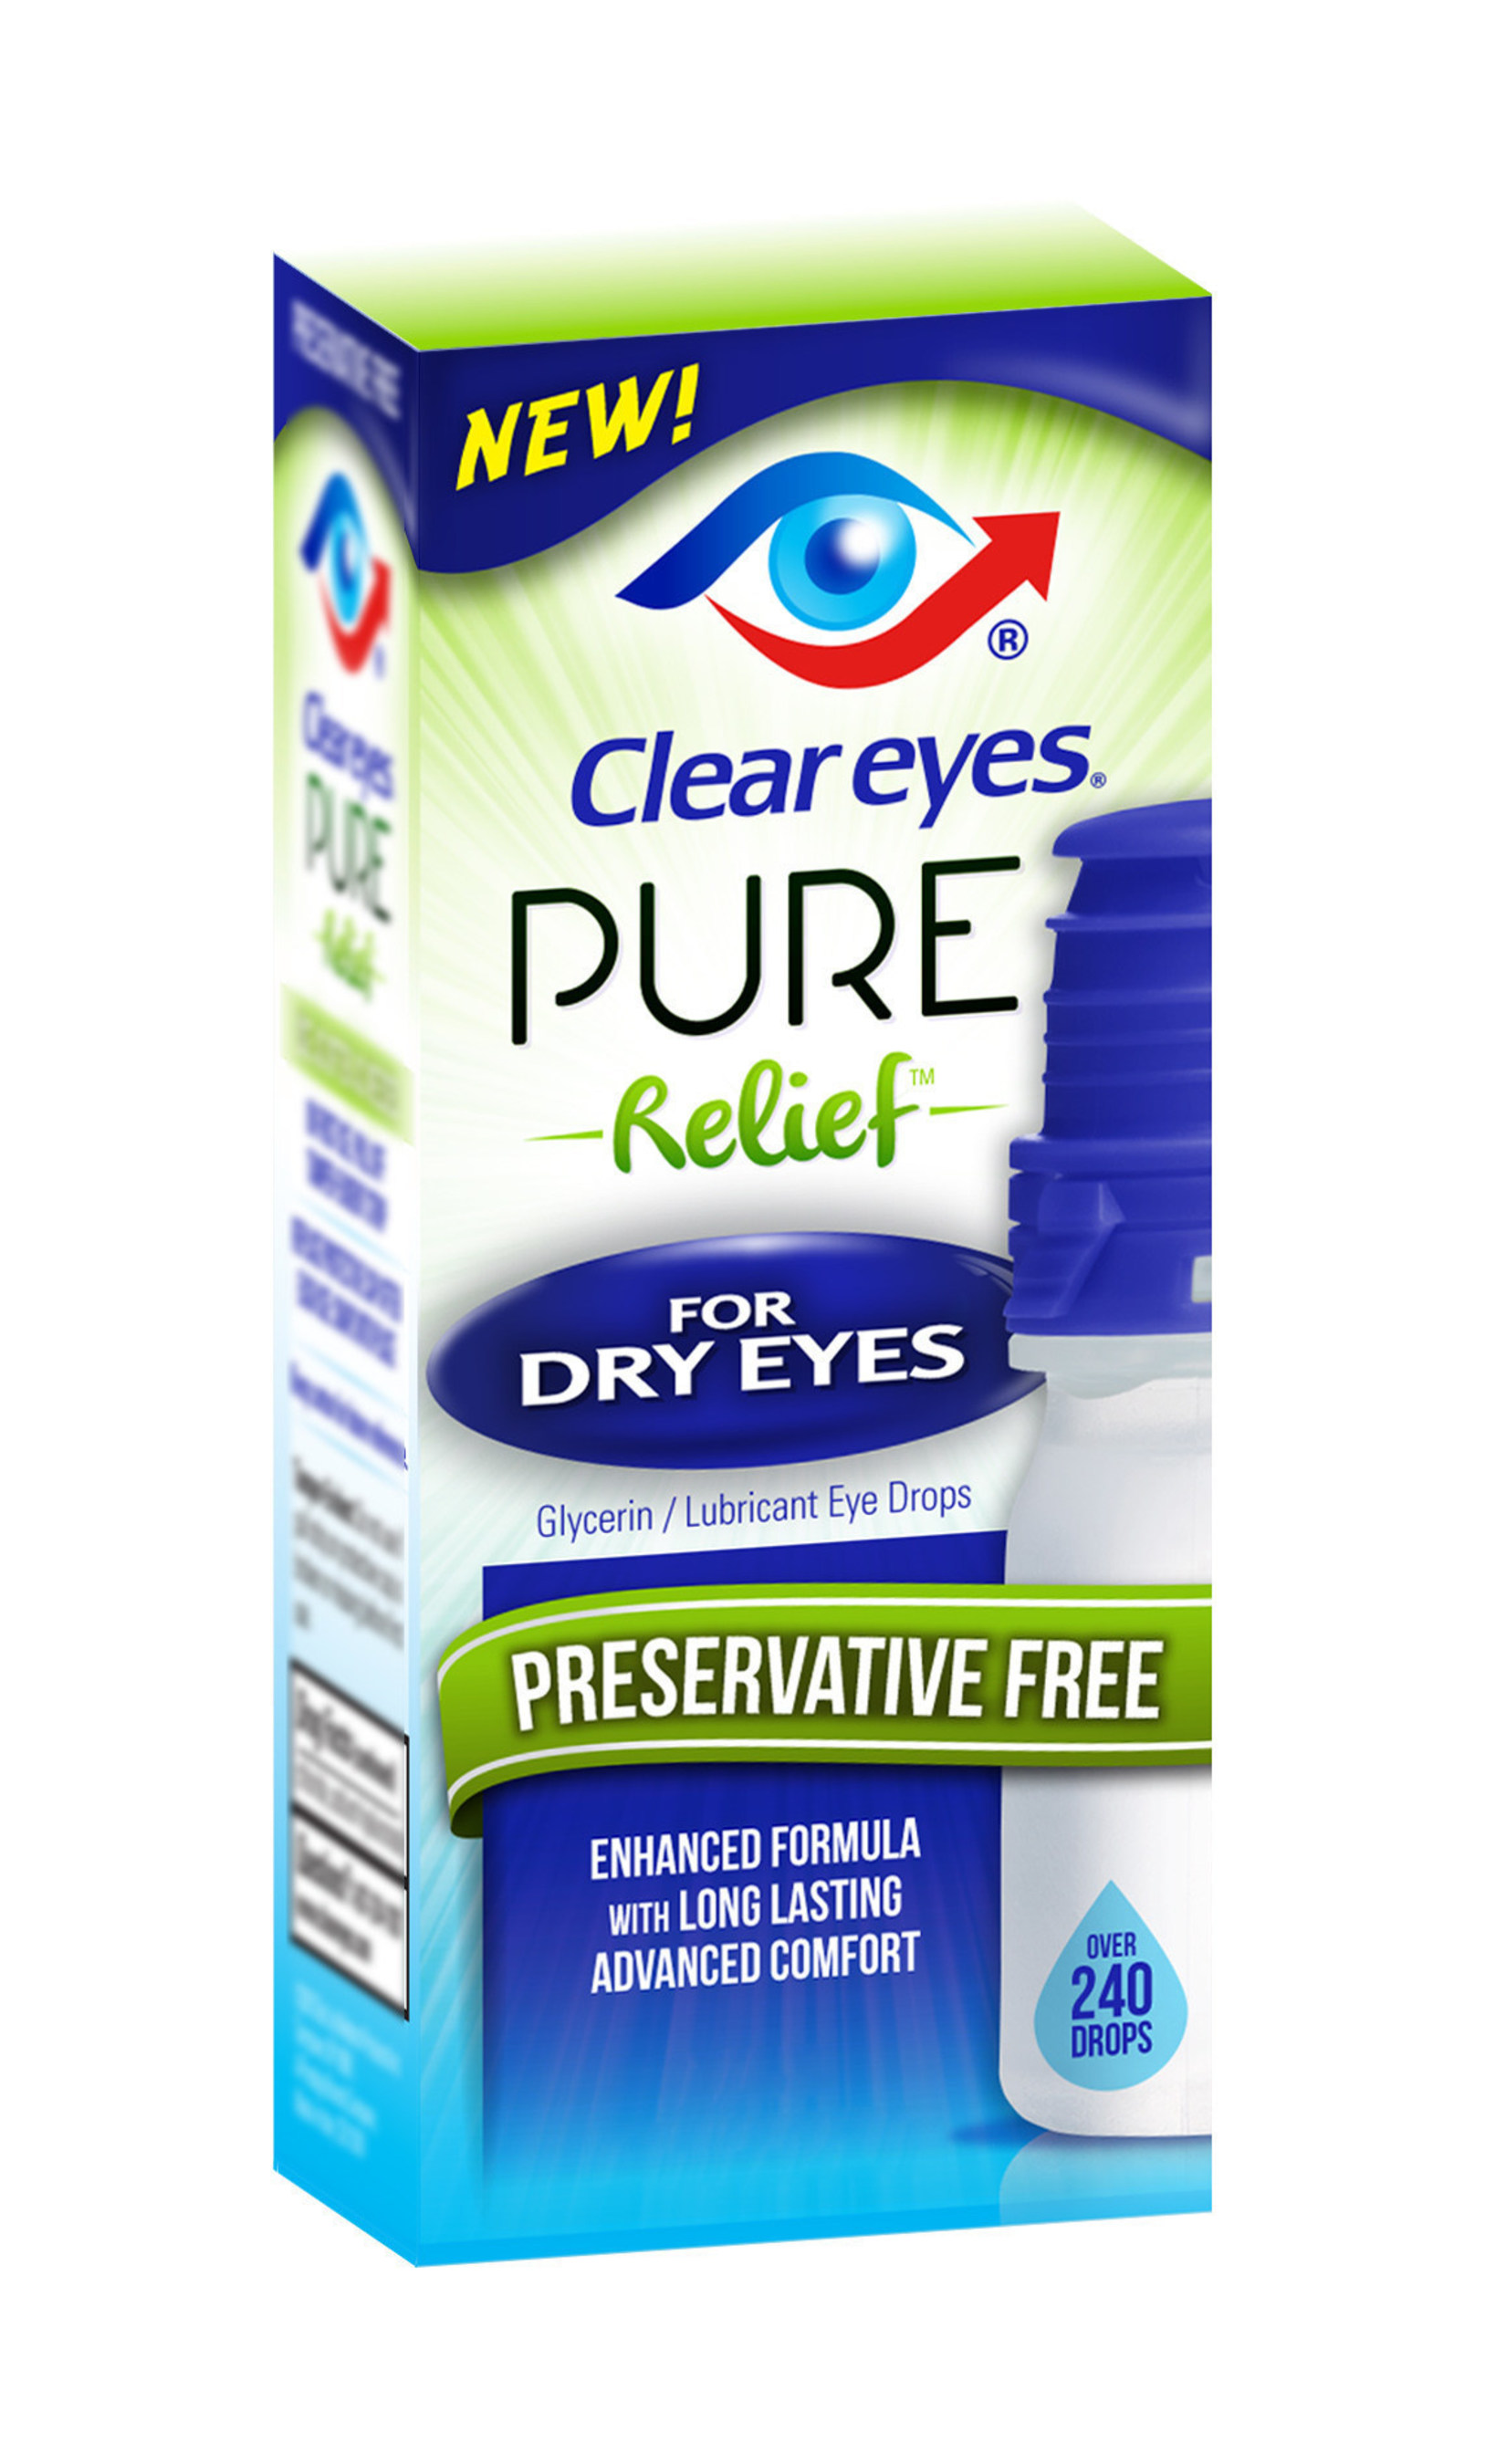 Clear Eyes(R) Pure Relief(TM) for Dry Eyes